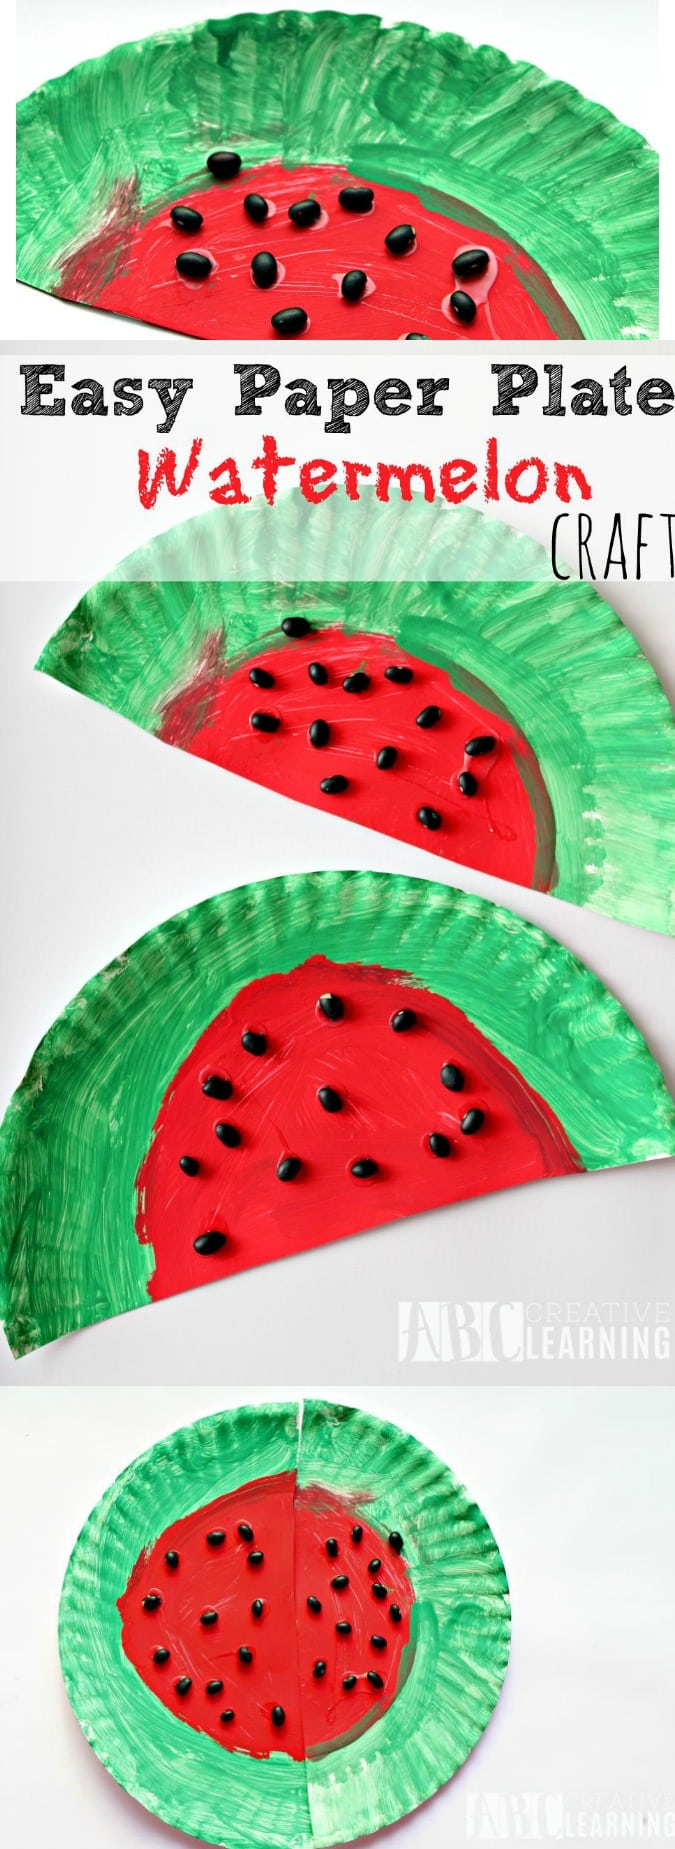 Easy Paper Plate Watermelon Craft - simplytodaylife.com